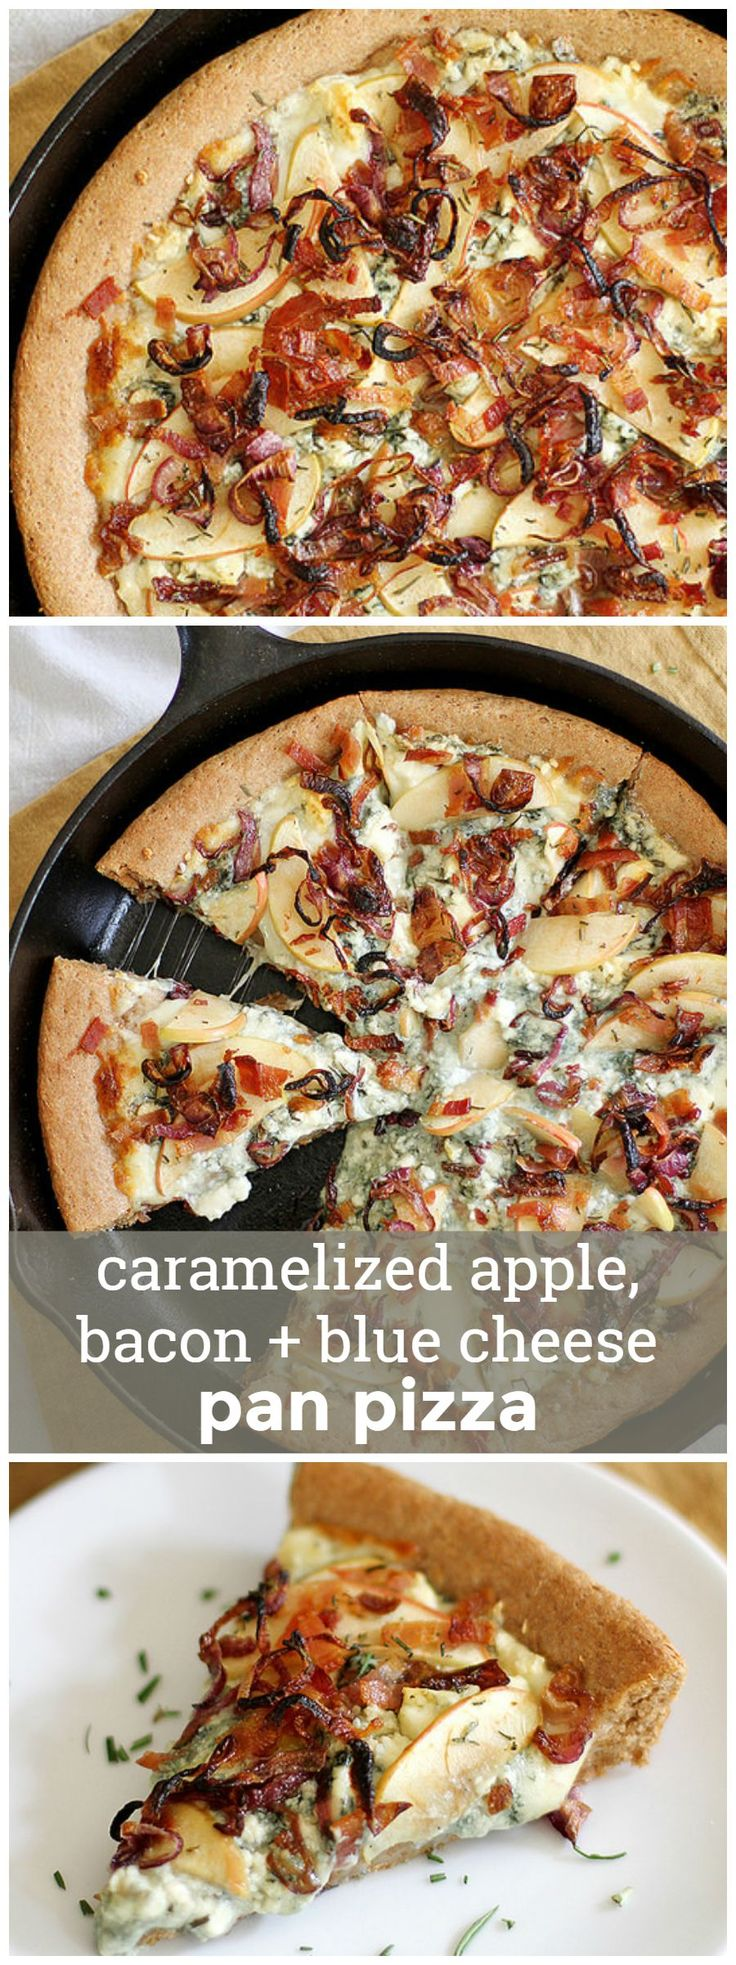 Caramelized Apple, Bacon & Blue Cheese Pan Pizza -- the most perfectly sweet and savory pizza you'll ever make from scratch. girlversusdough.com @girlversusdough